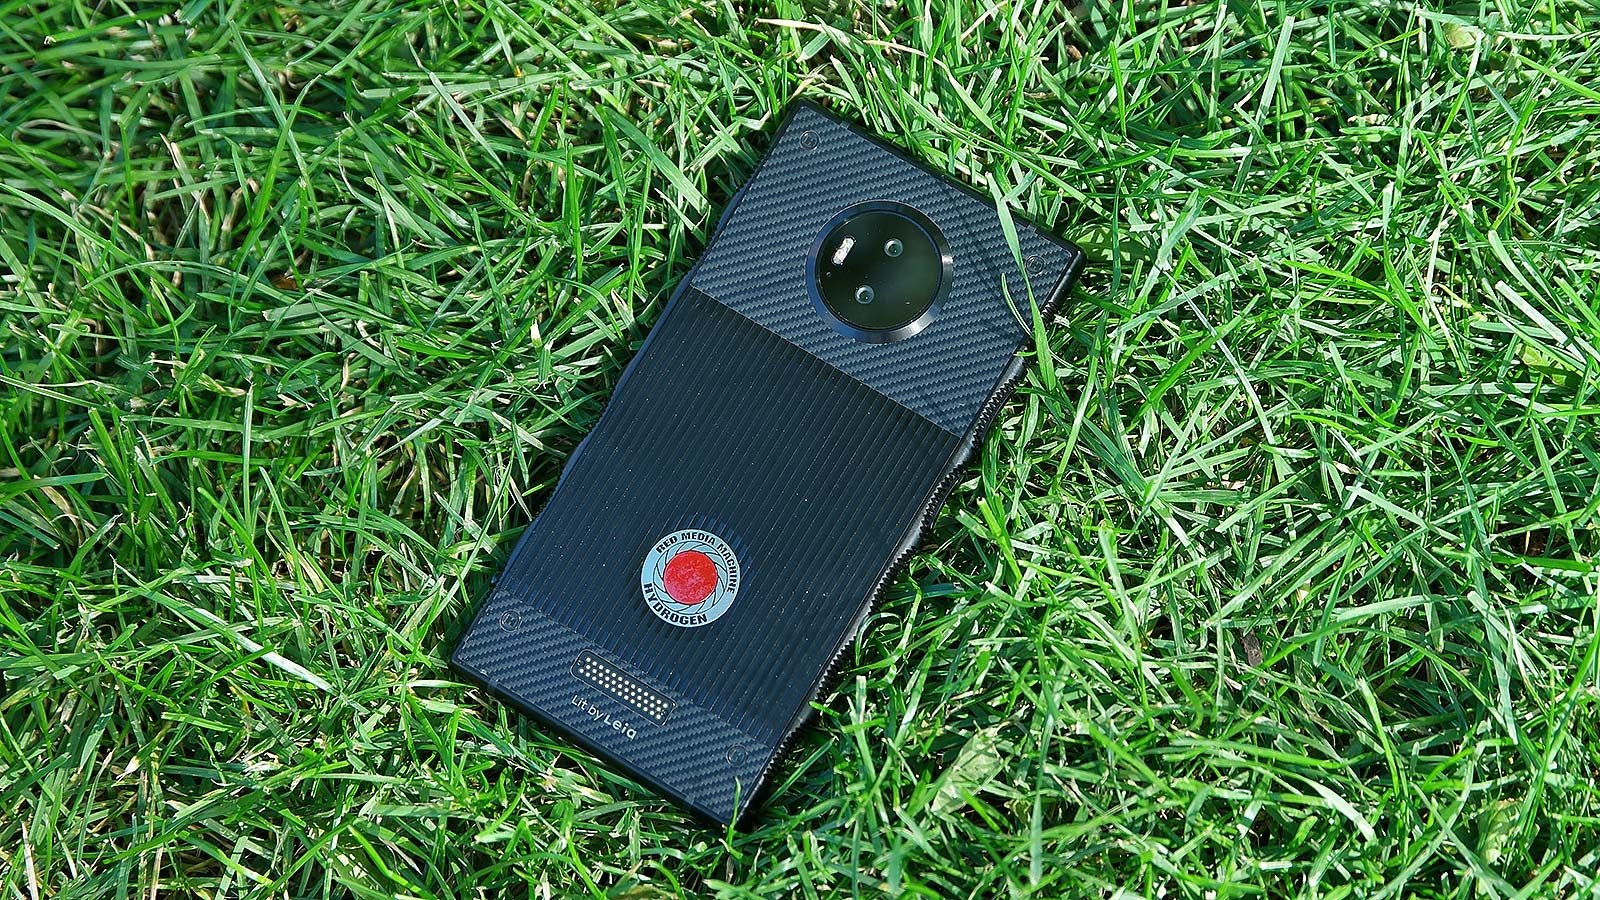 Red Founder Kills The Company's Holographic Phone Project, Announces Retirement